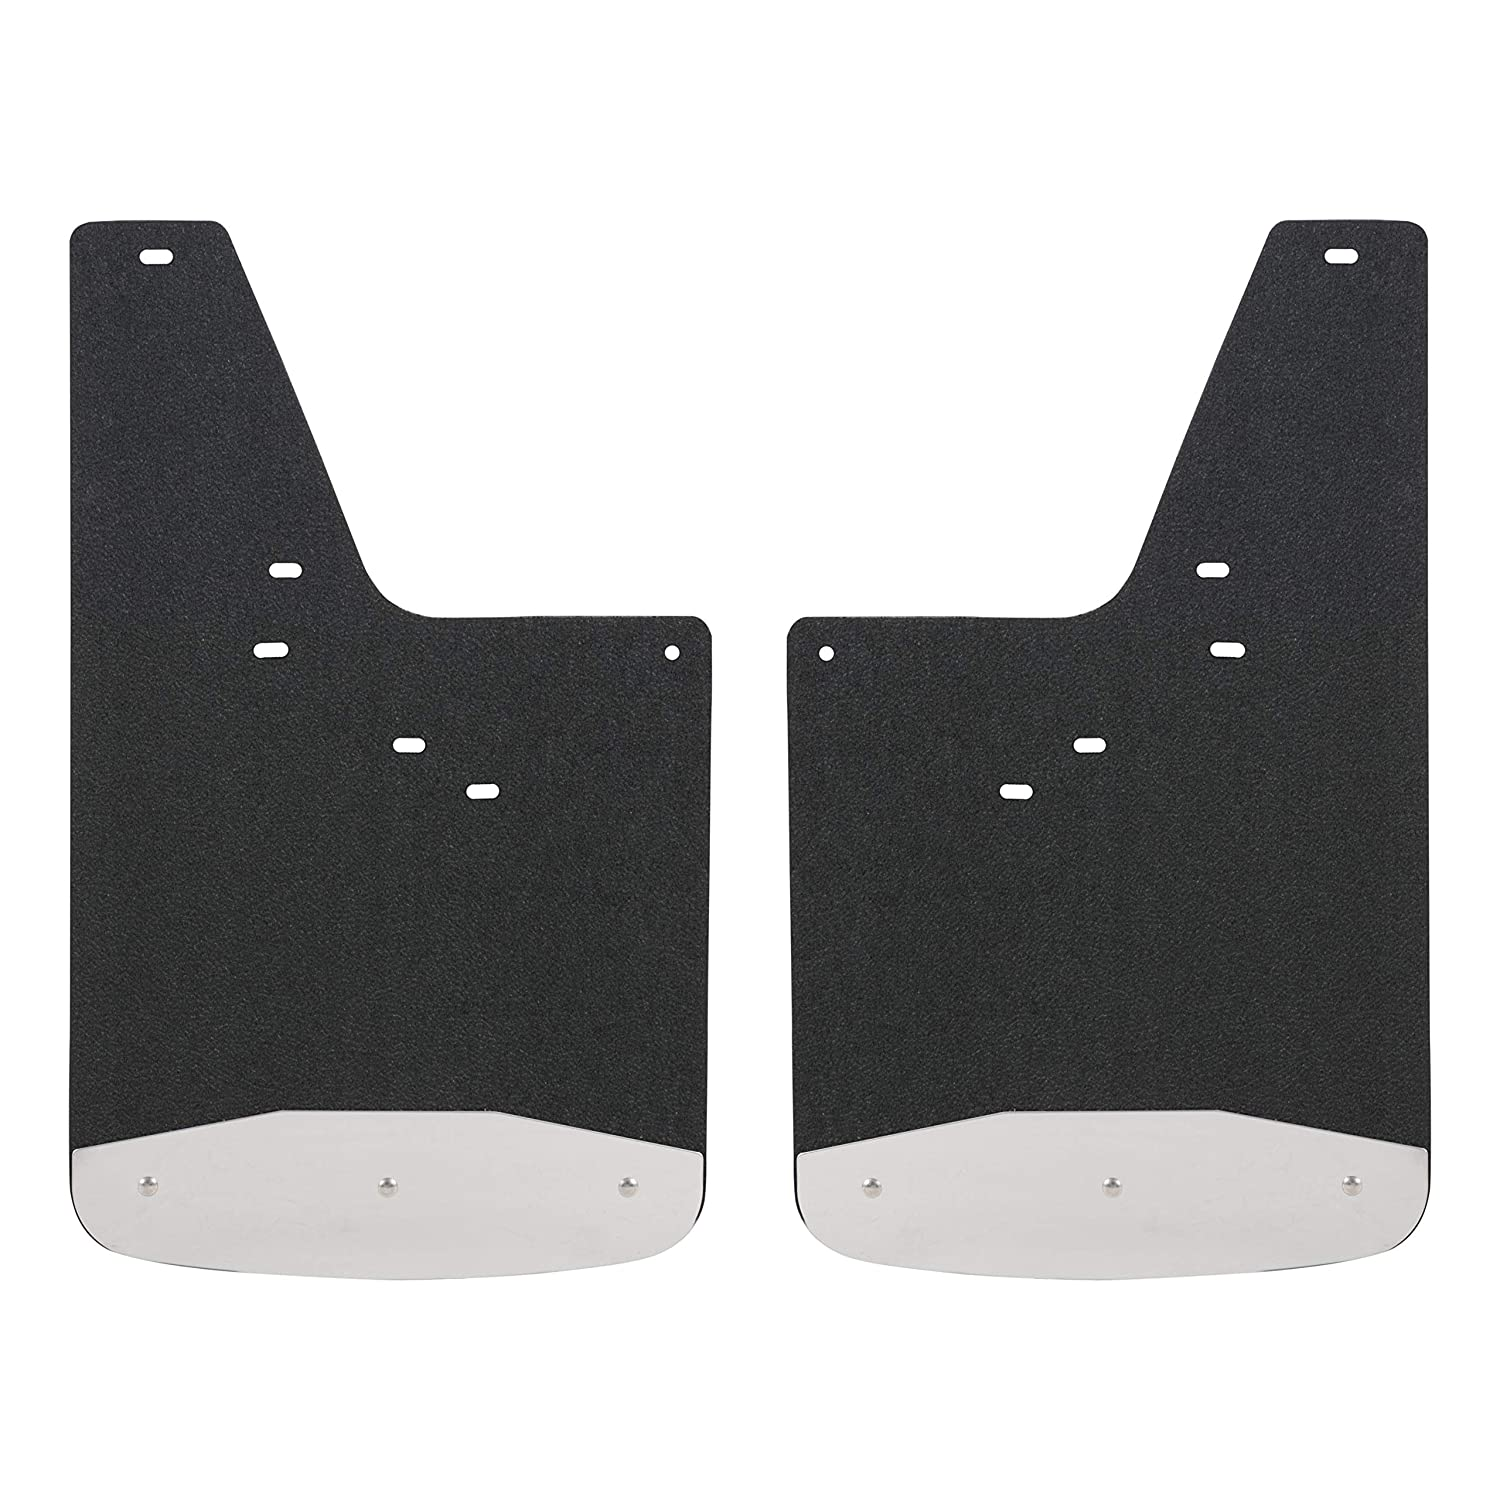 LUVERNE 251440 Front or Rear 12 x 20-Inch Textured Rubber Mud Guards Black 12 x 20 for Select Chevrolet Silverado 2500 GMC Sierra 1500 3500 HD